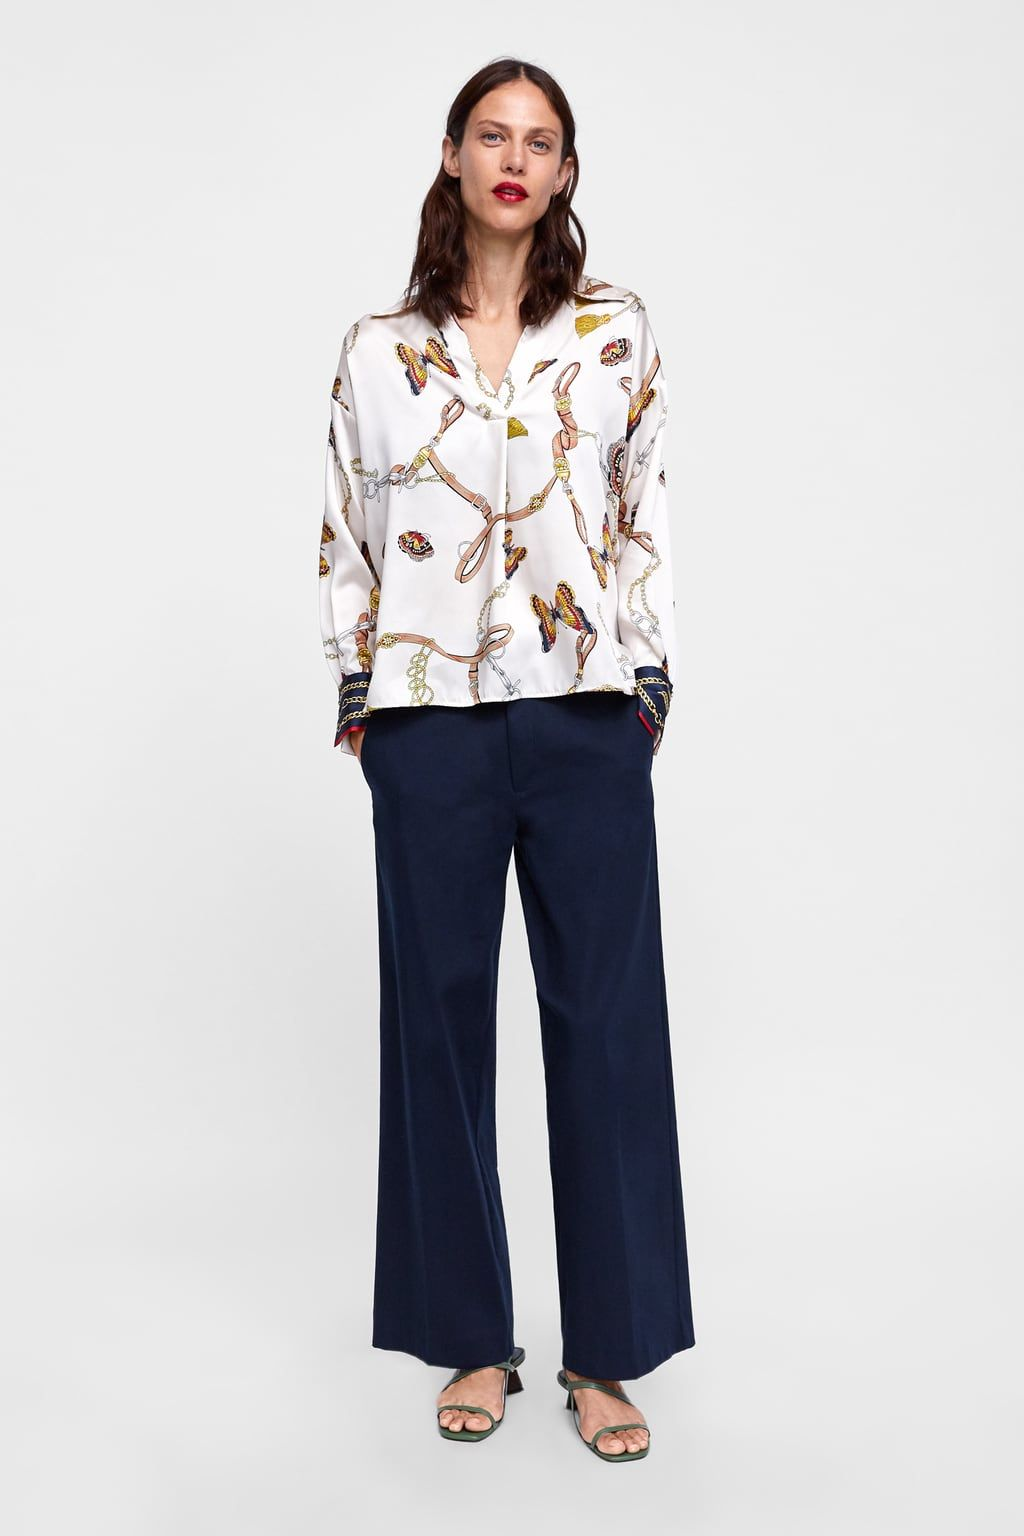 c7c57976d32 Image 1 of CHAIN PRINT BLOUSE from Zara